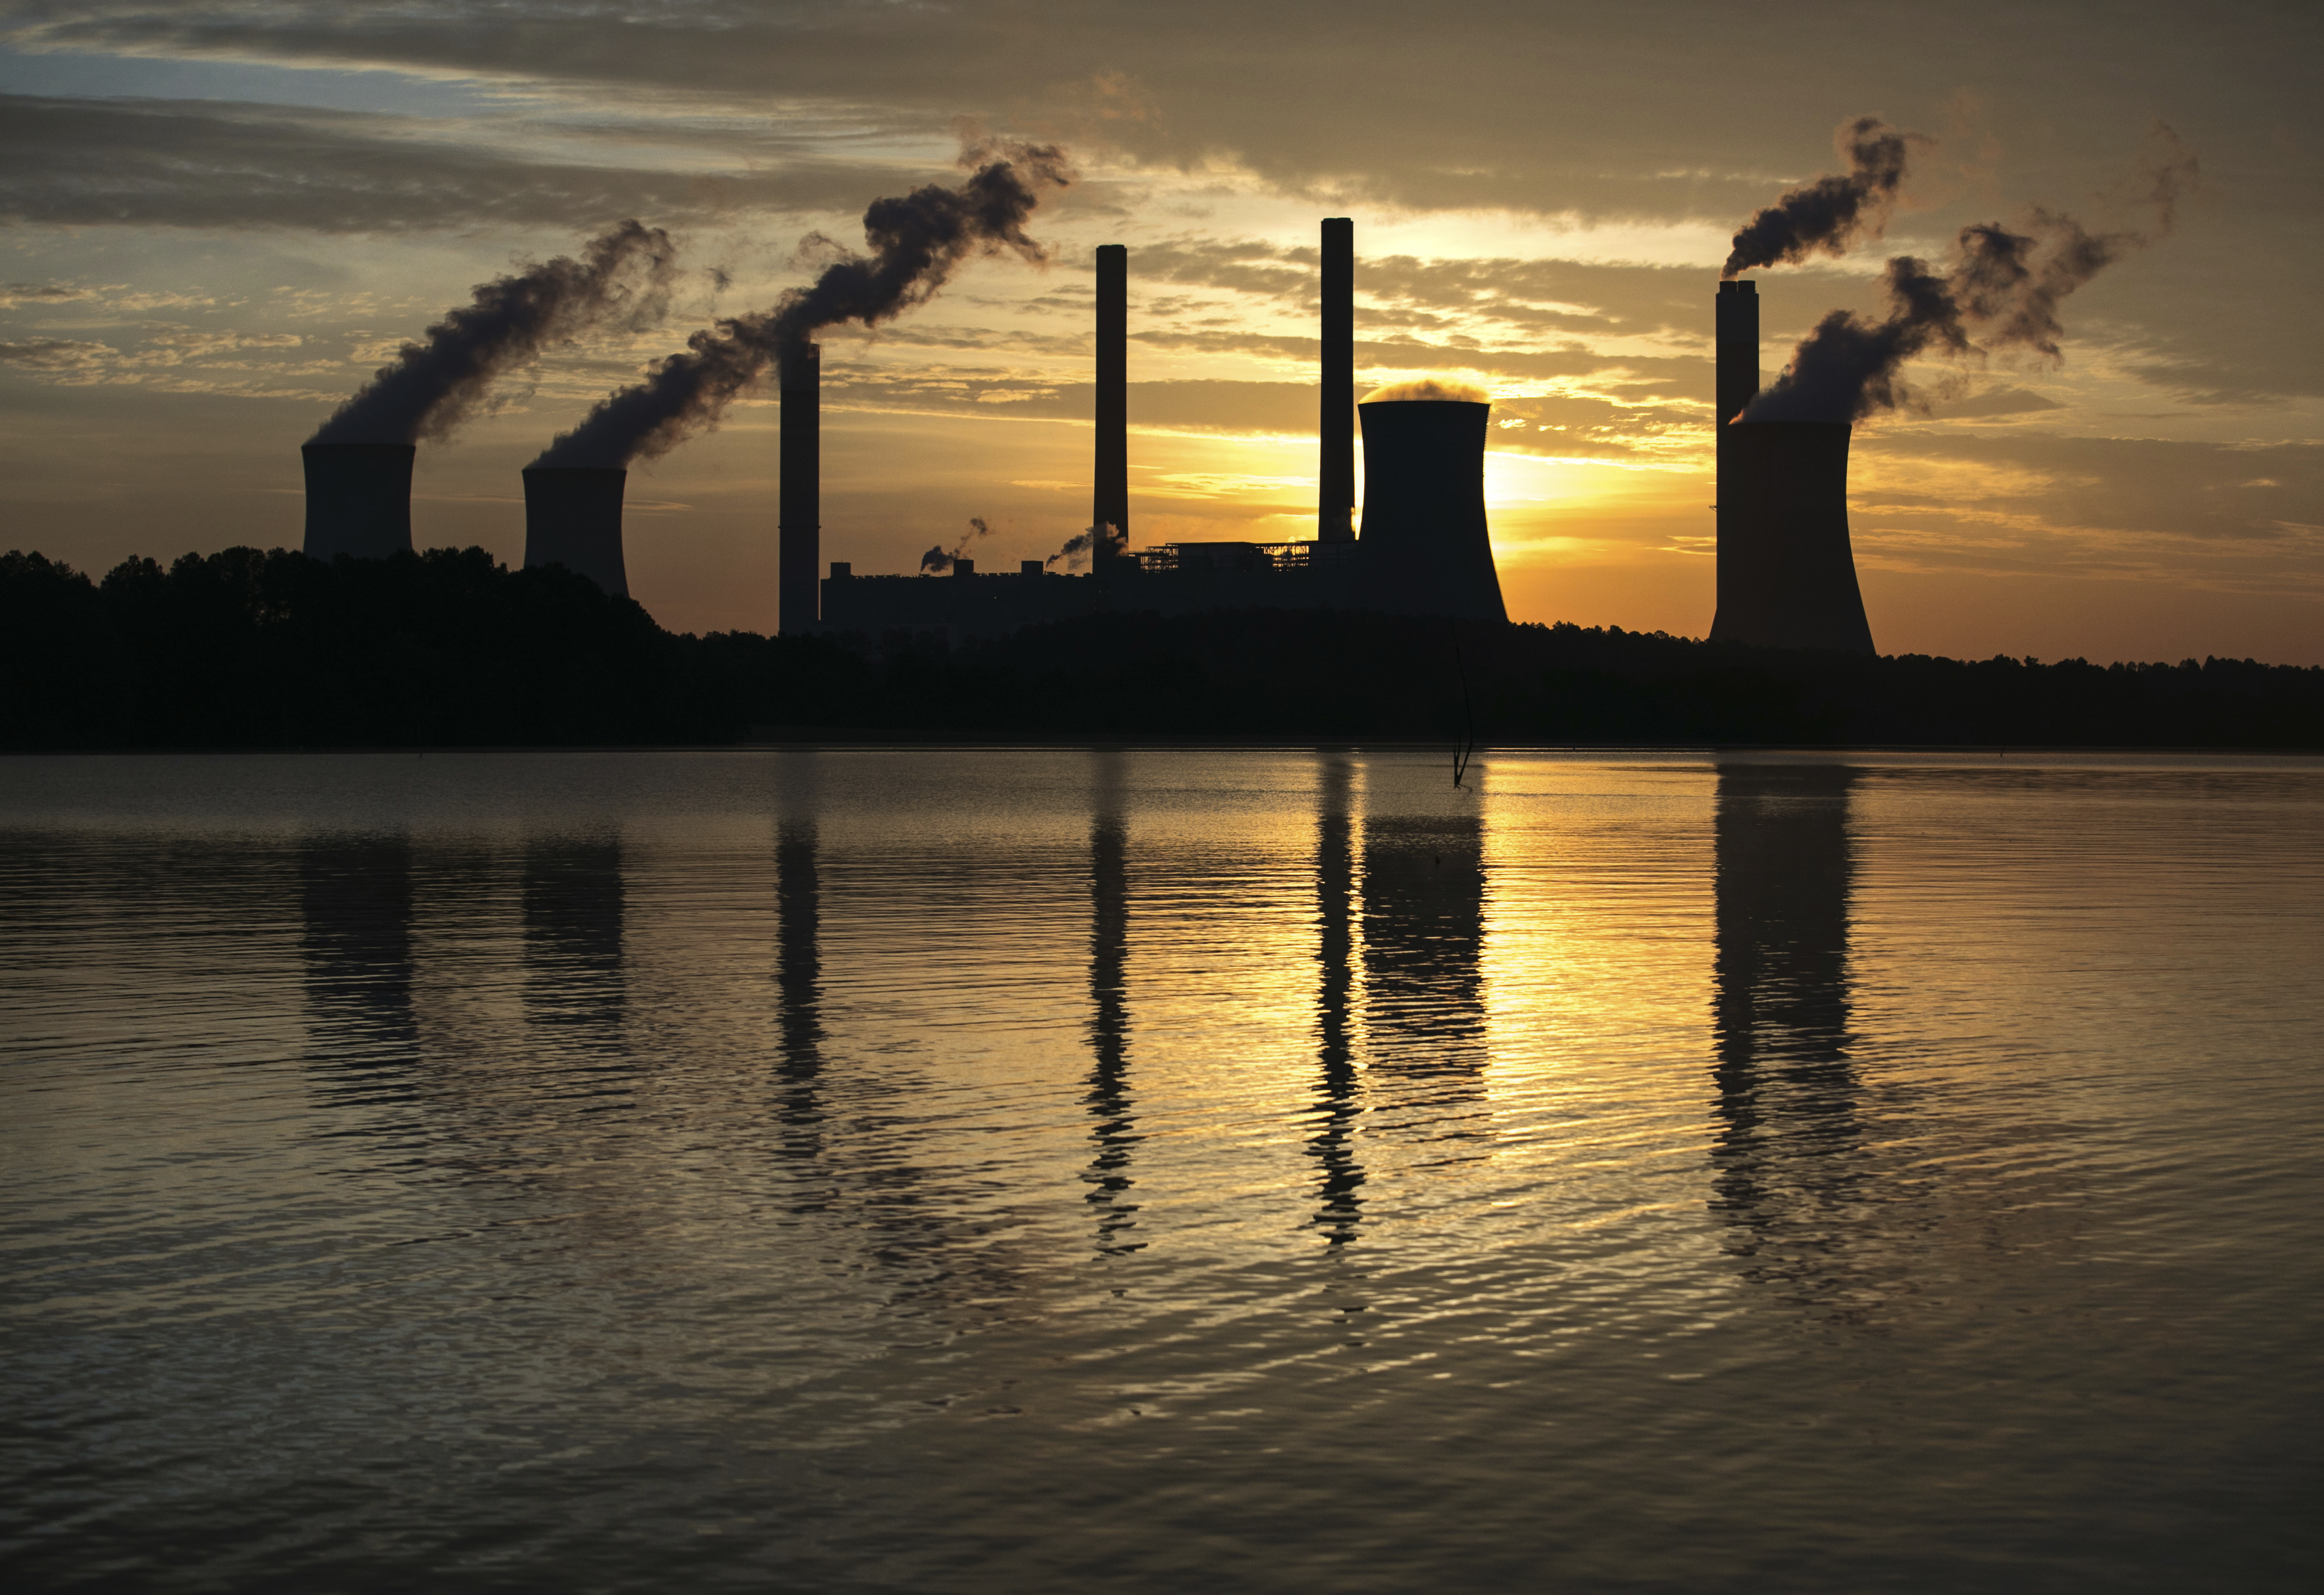 Trumps Climate War-3 FILE - In this June 3, 2017 file photo, the coal-fired Plant Scherer, one of the nation's top carbon dioxide emitters, stands in the distance in Juliette, Ga. President Donald Trump's recent decision to pull the United States from the international climate deal reached in Paris was but the latest in a rapid-fire series of moves that would weaken or dismantle federal initiatives to reduce carbon emissions, which scientists say are heating the planet to levels that could have disastrous consequences. (AP Photo/Branden Camp)